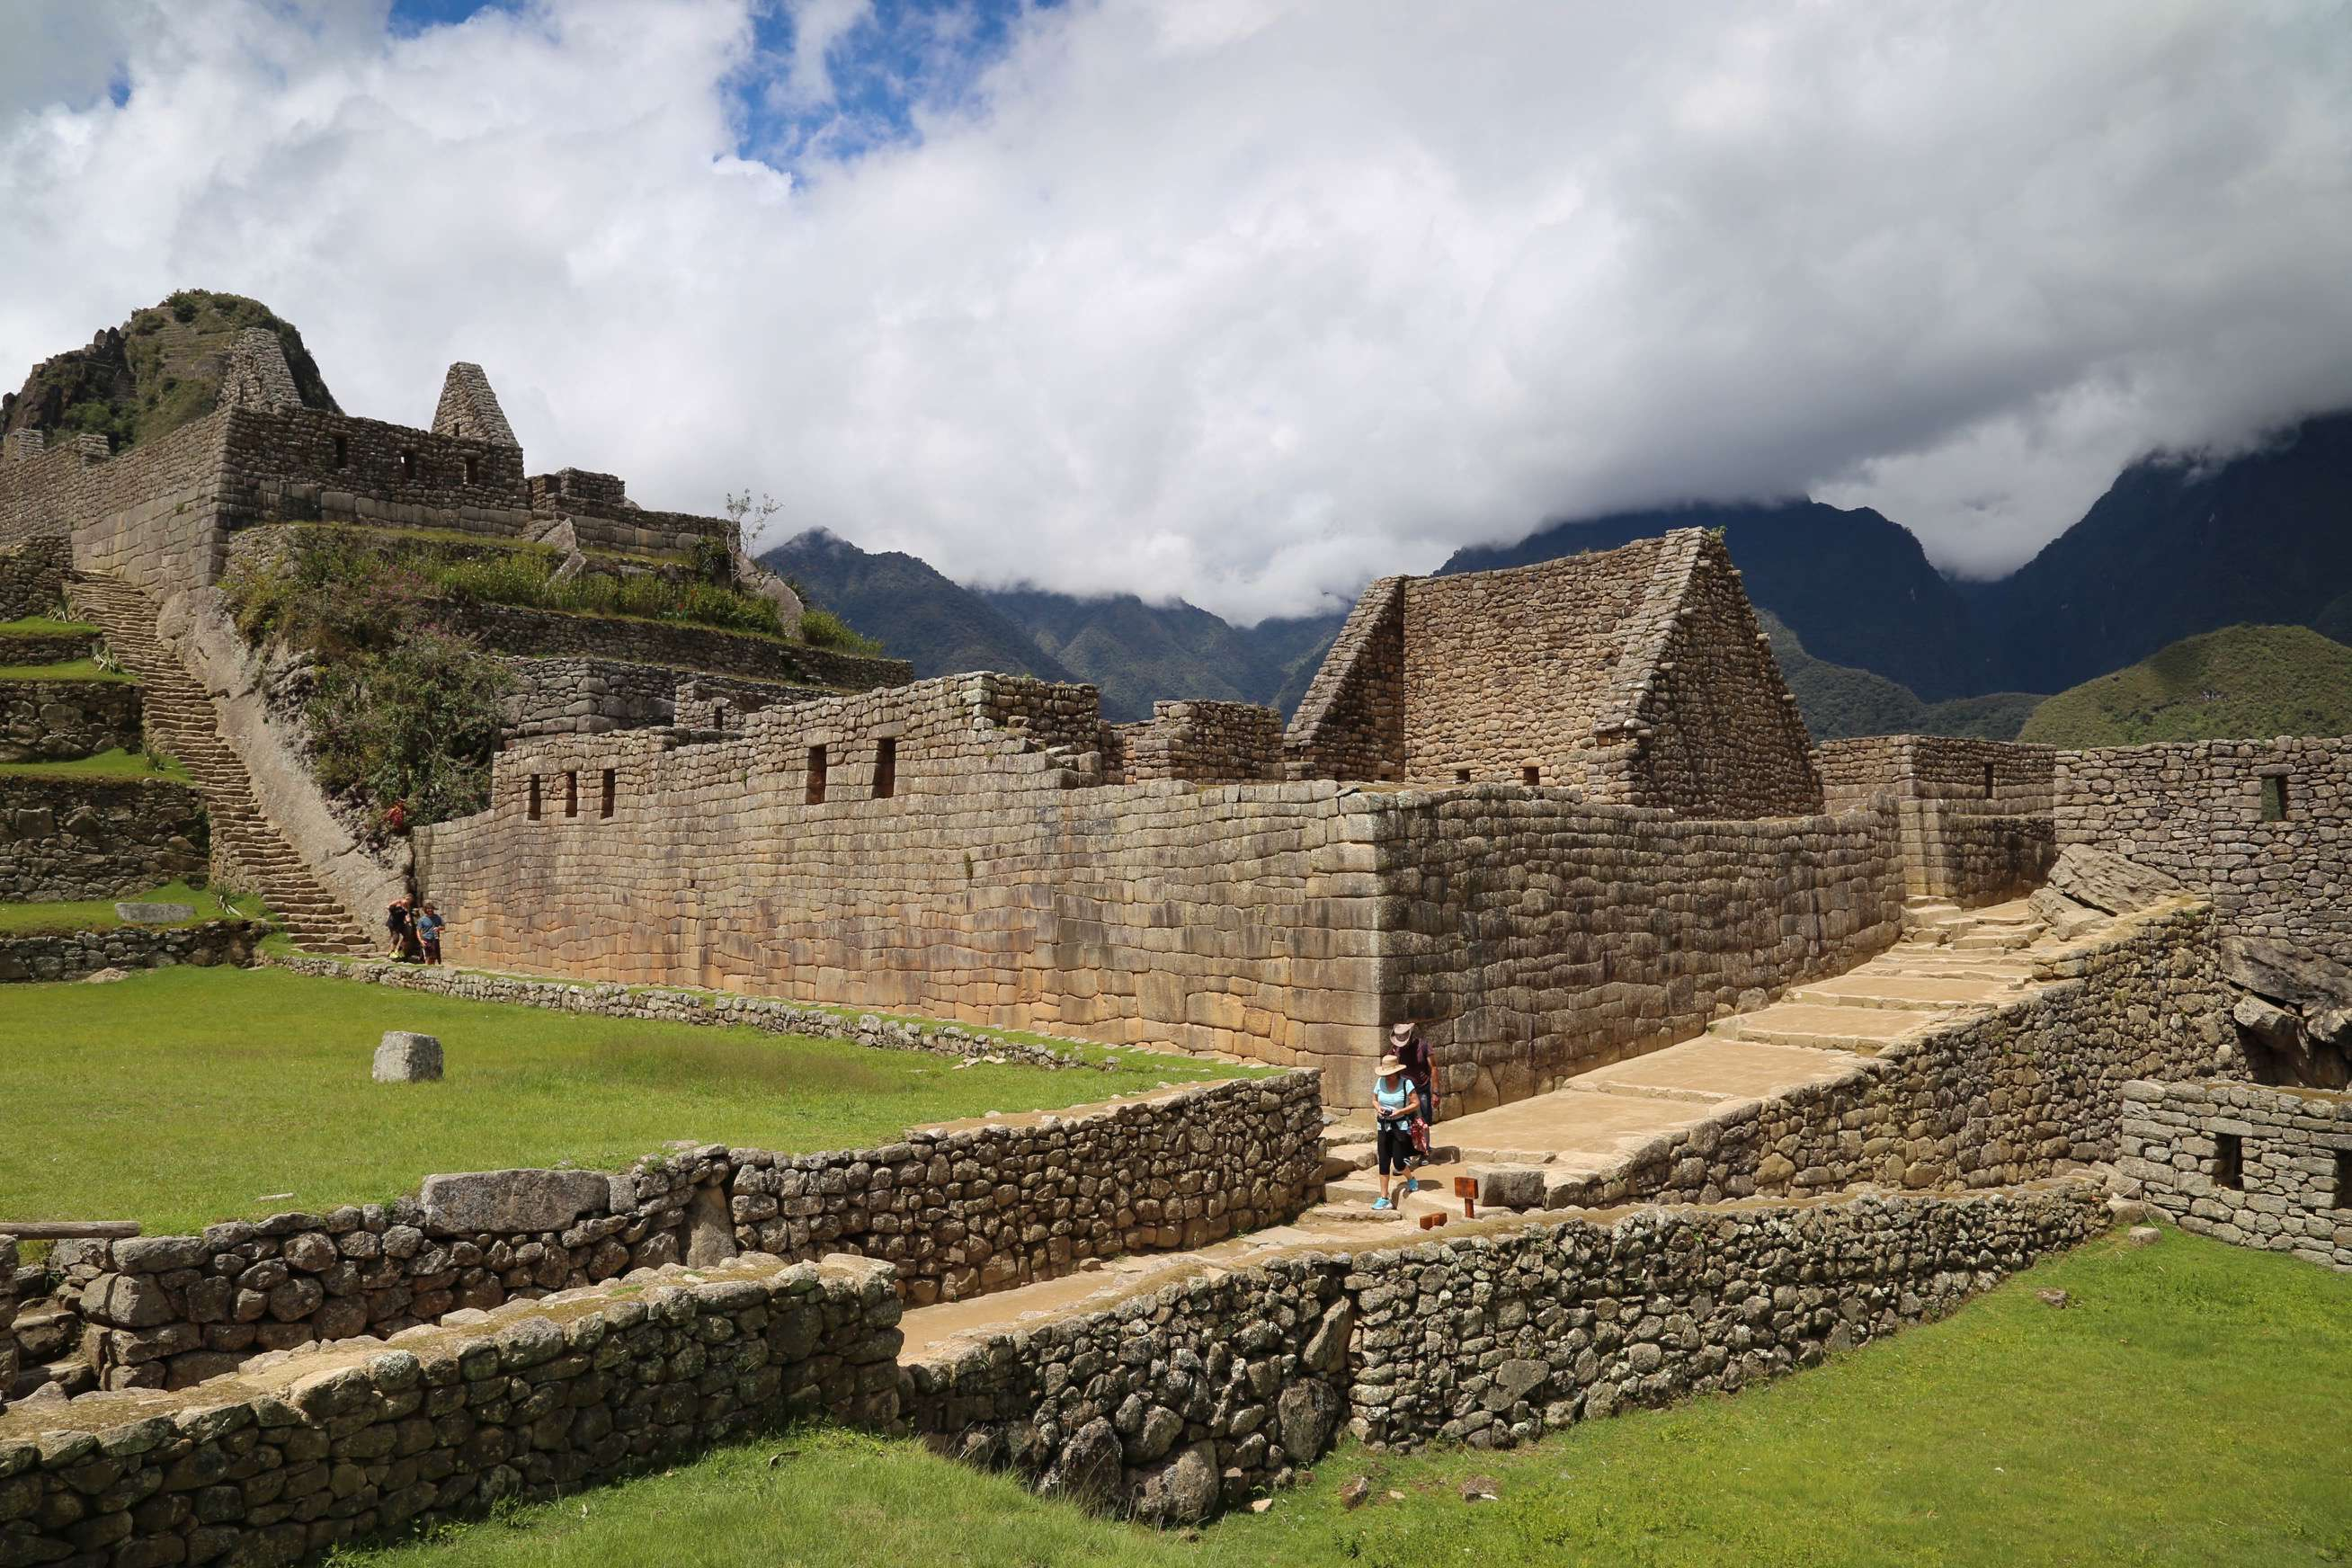 On many days Machu Picchu is shrouded in clouds but when the sun peeks out, there's an added dimension to its beauty.